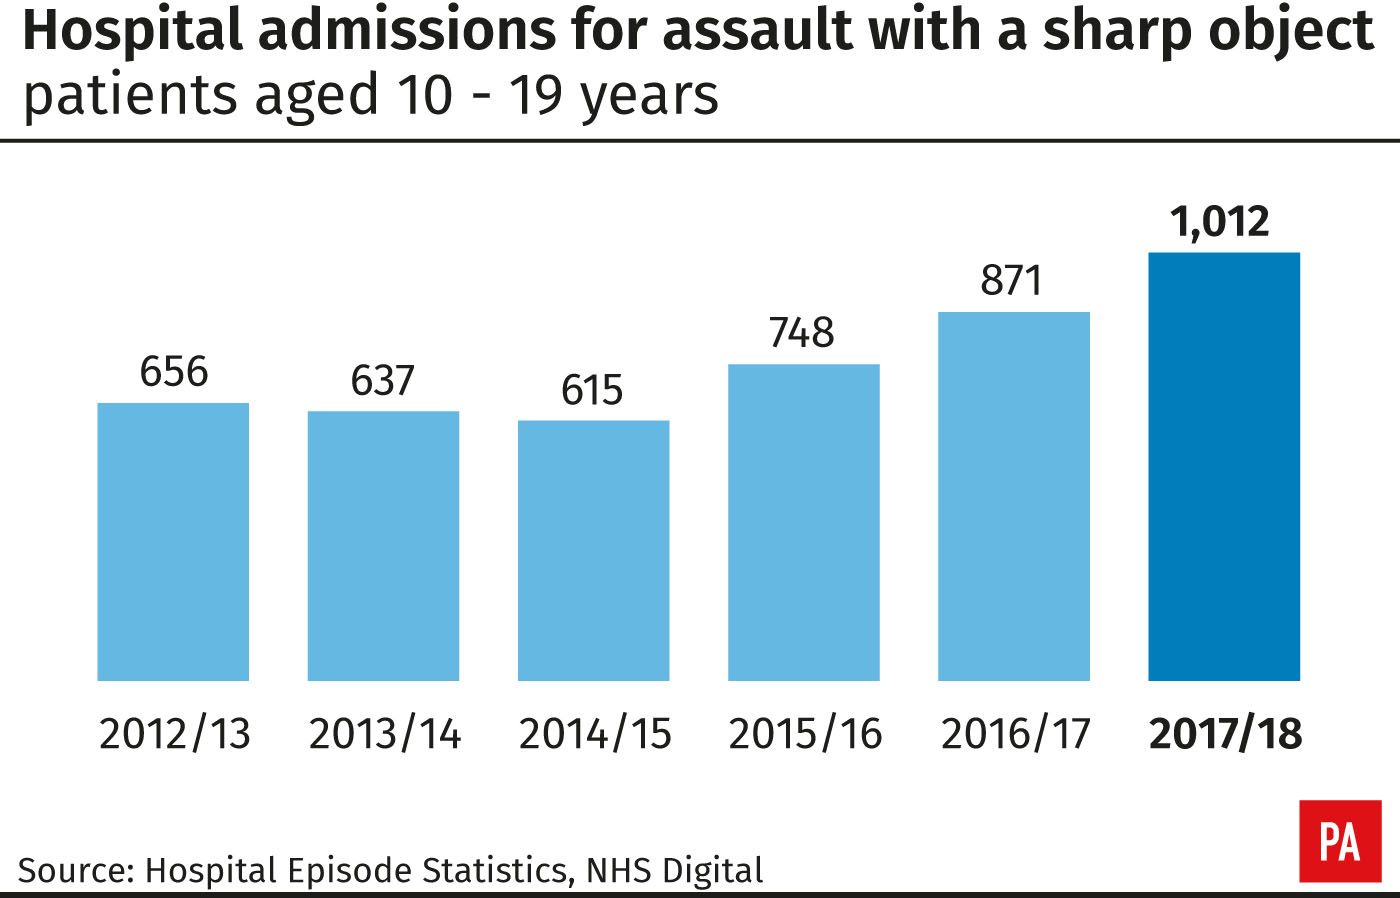 Hospital admissions for assault with a sharp object patients aged 10-19 years